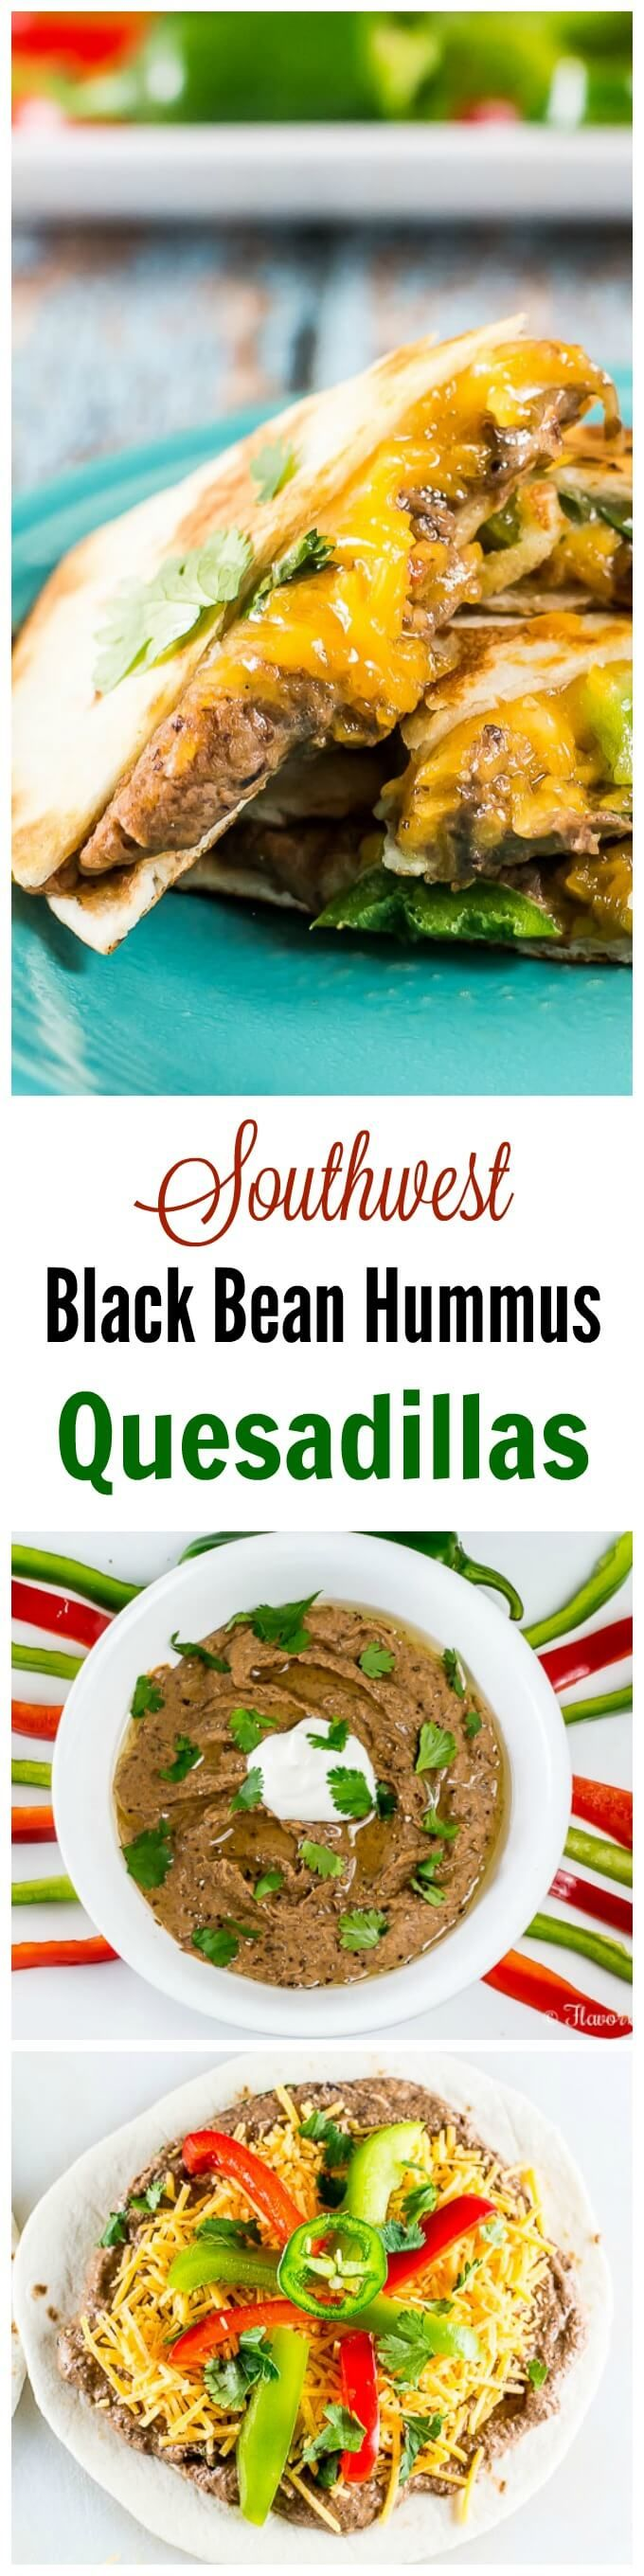 These spicy, cheesy Southwest Black Bean Hummus Quesadillas start with the easy 2-ingredient Southwest Black Bean Hummus and come together in minutes for a Mediterranean twist on a favorite Mexican appetizer. #ad #HummusMadeEasy   ~ http://FlavorMosaic.com